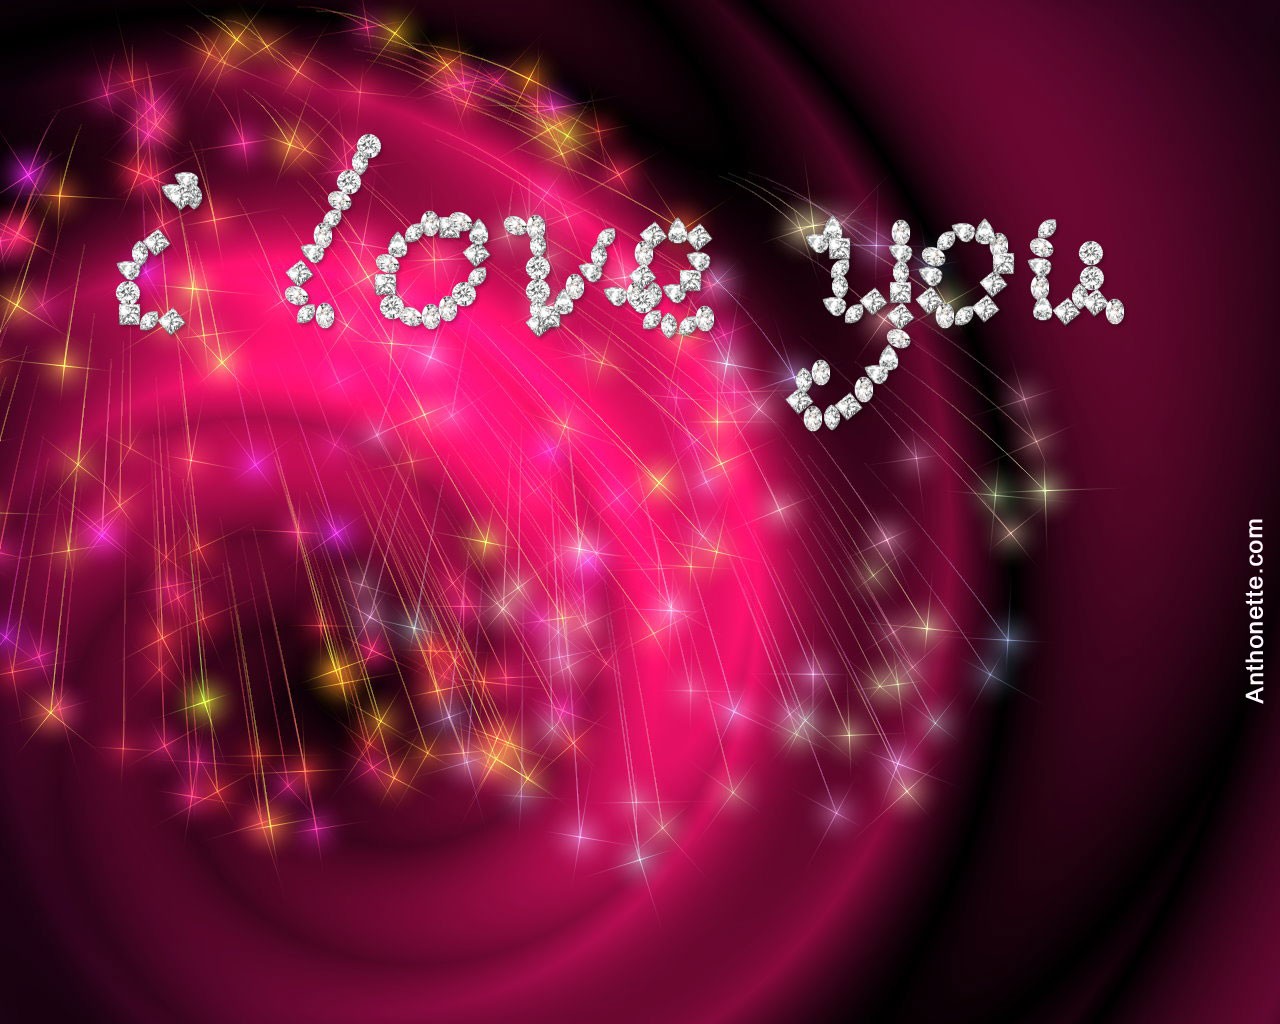 Love U Wallpaper Full Hd : Love You Wallpapers HD Nice Wallpapers